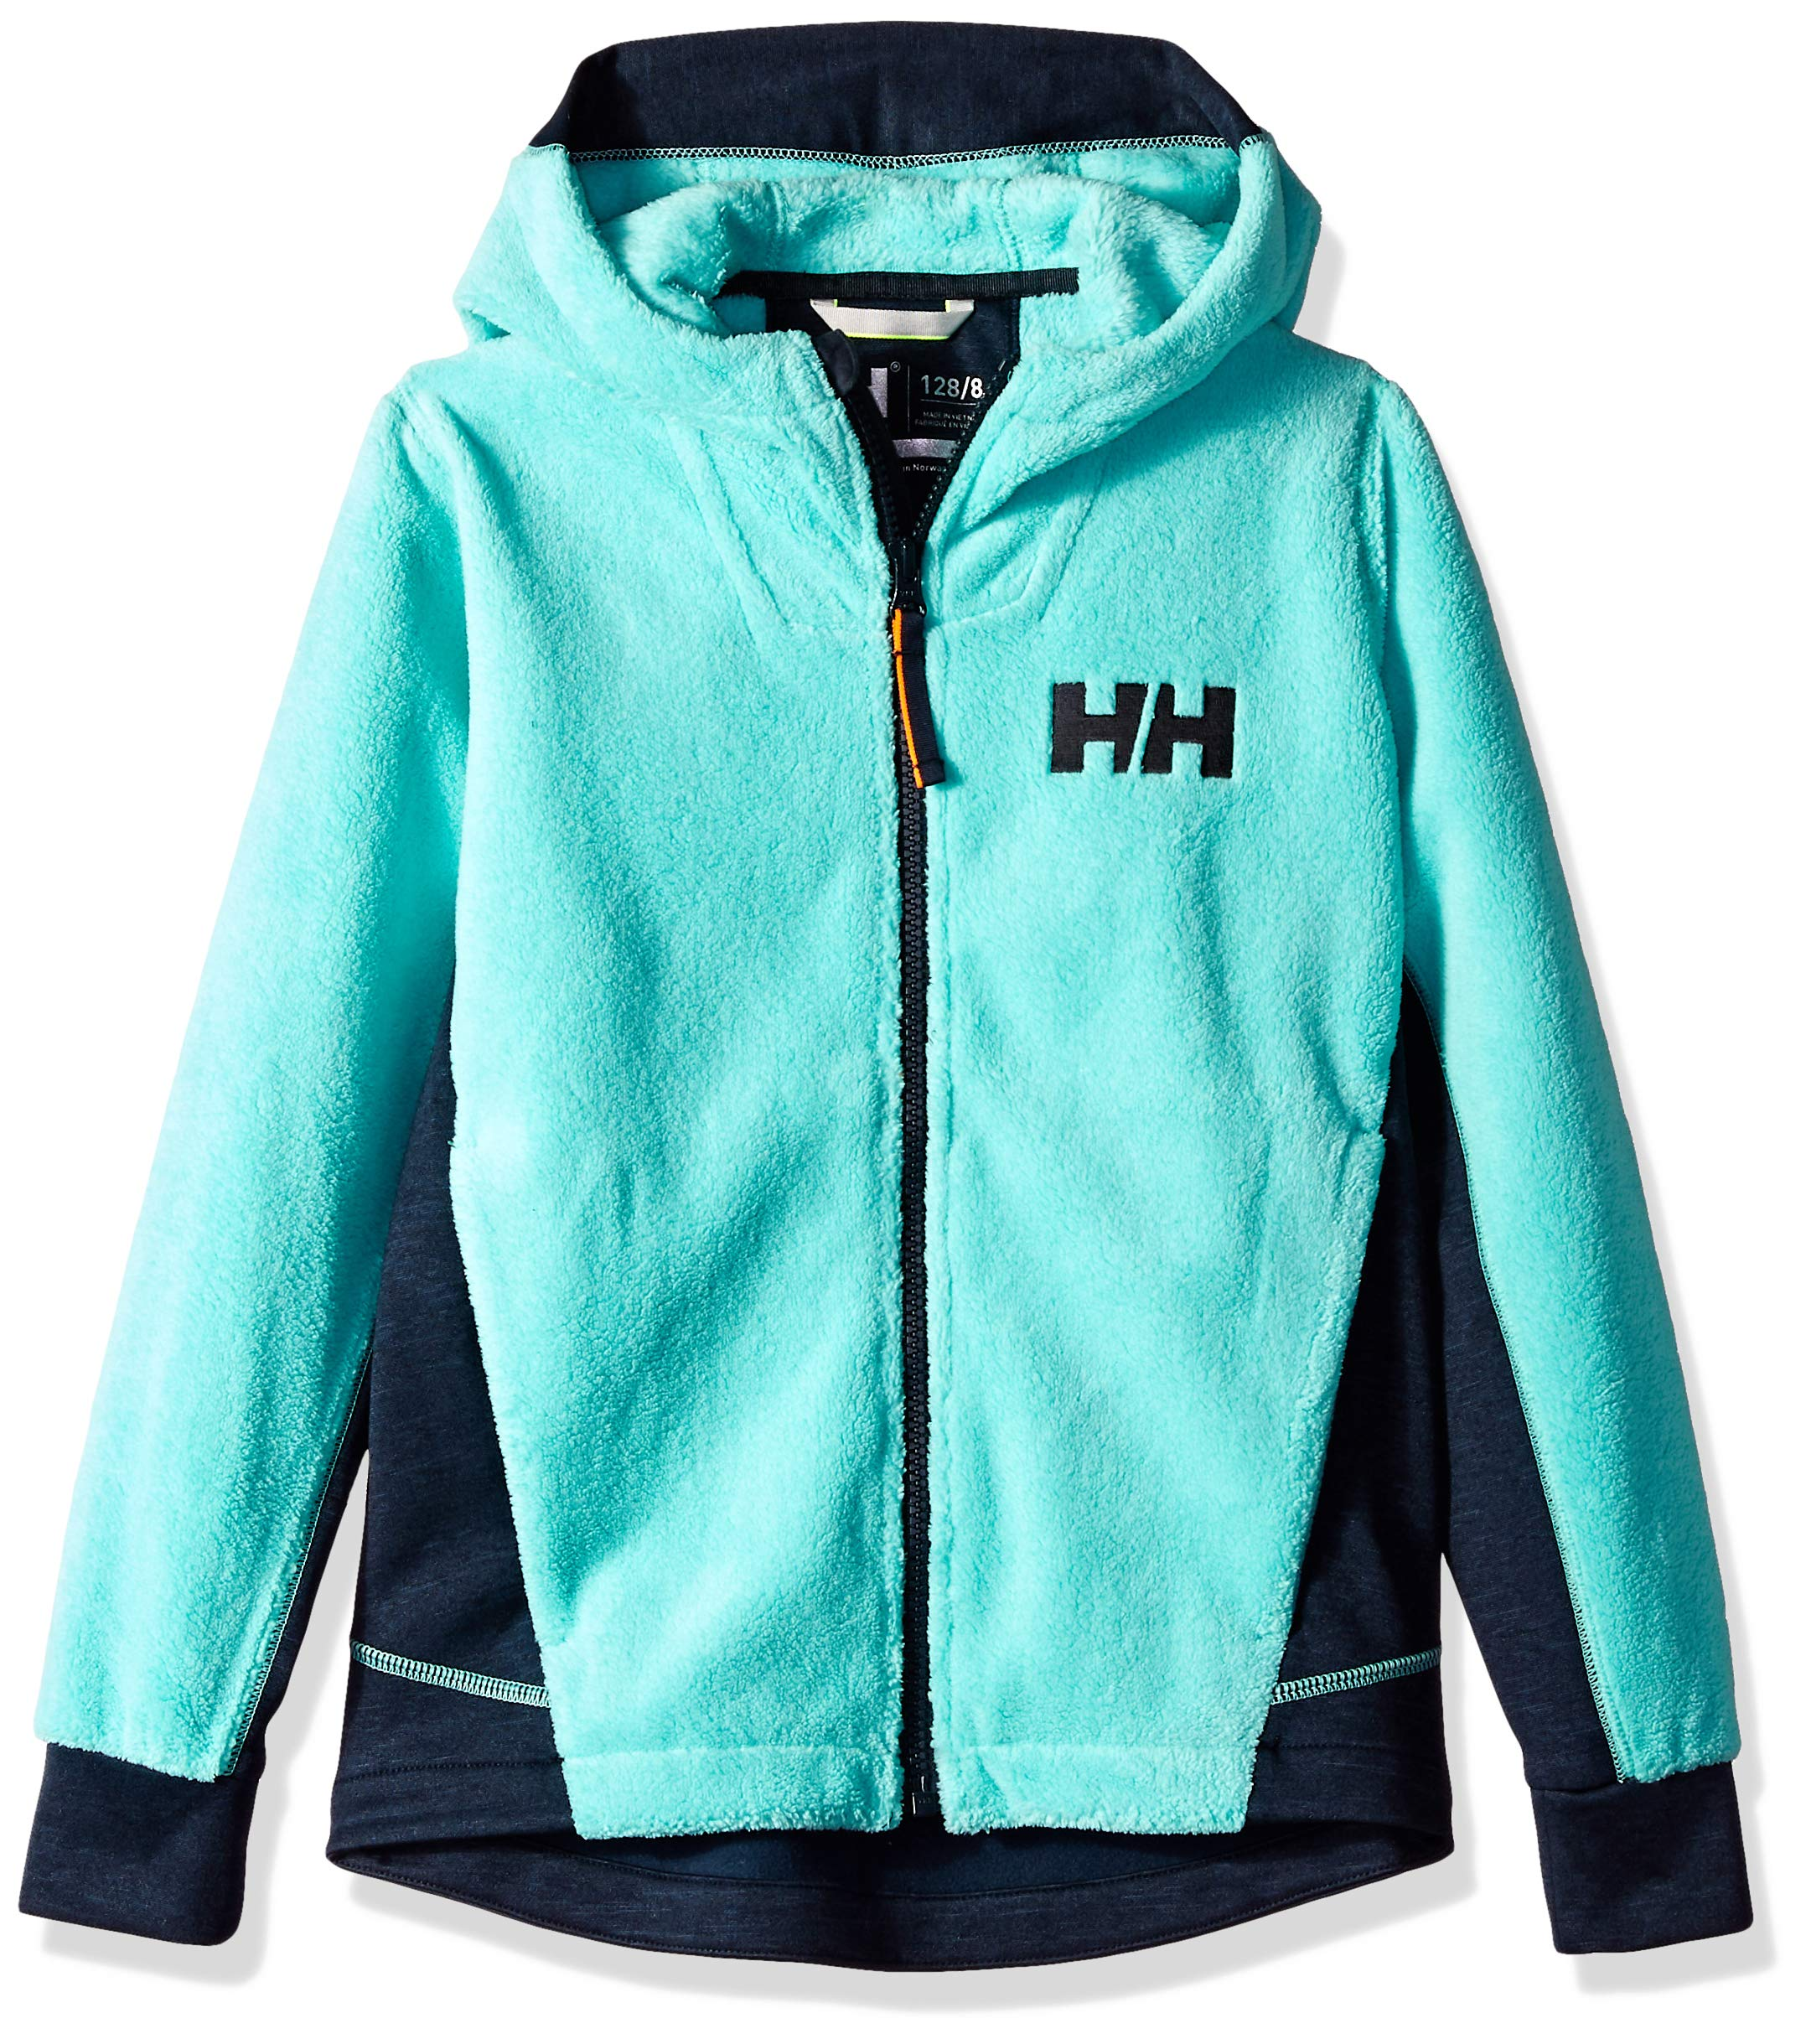 Helly Hansen Jr Chill Full-Zip Hoodie, Pool Blue, Size 16 by Helly Hansen (Image #1)